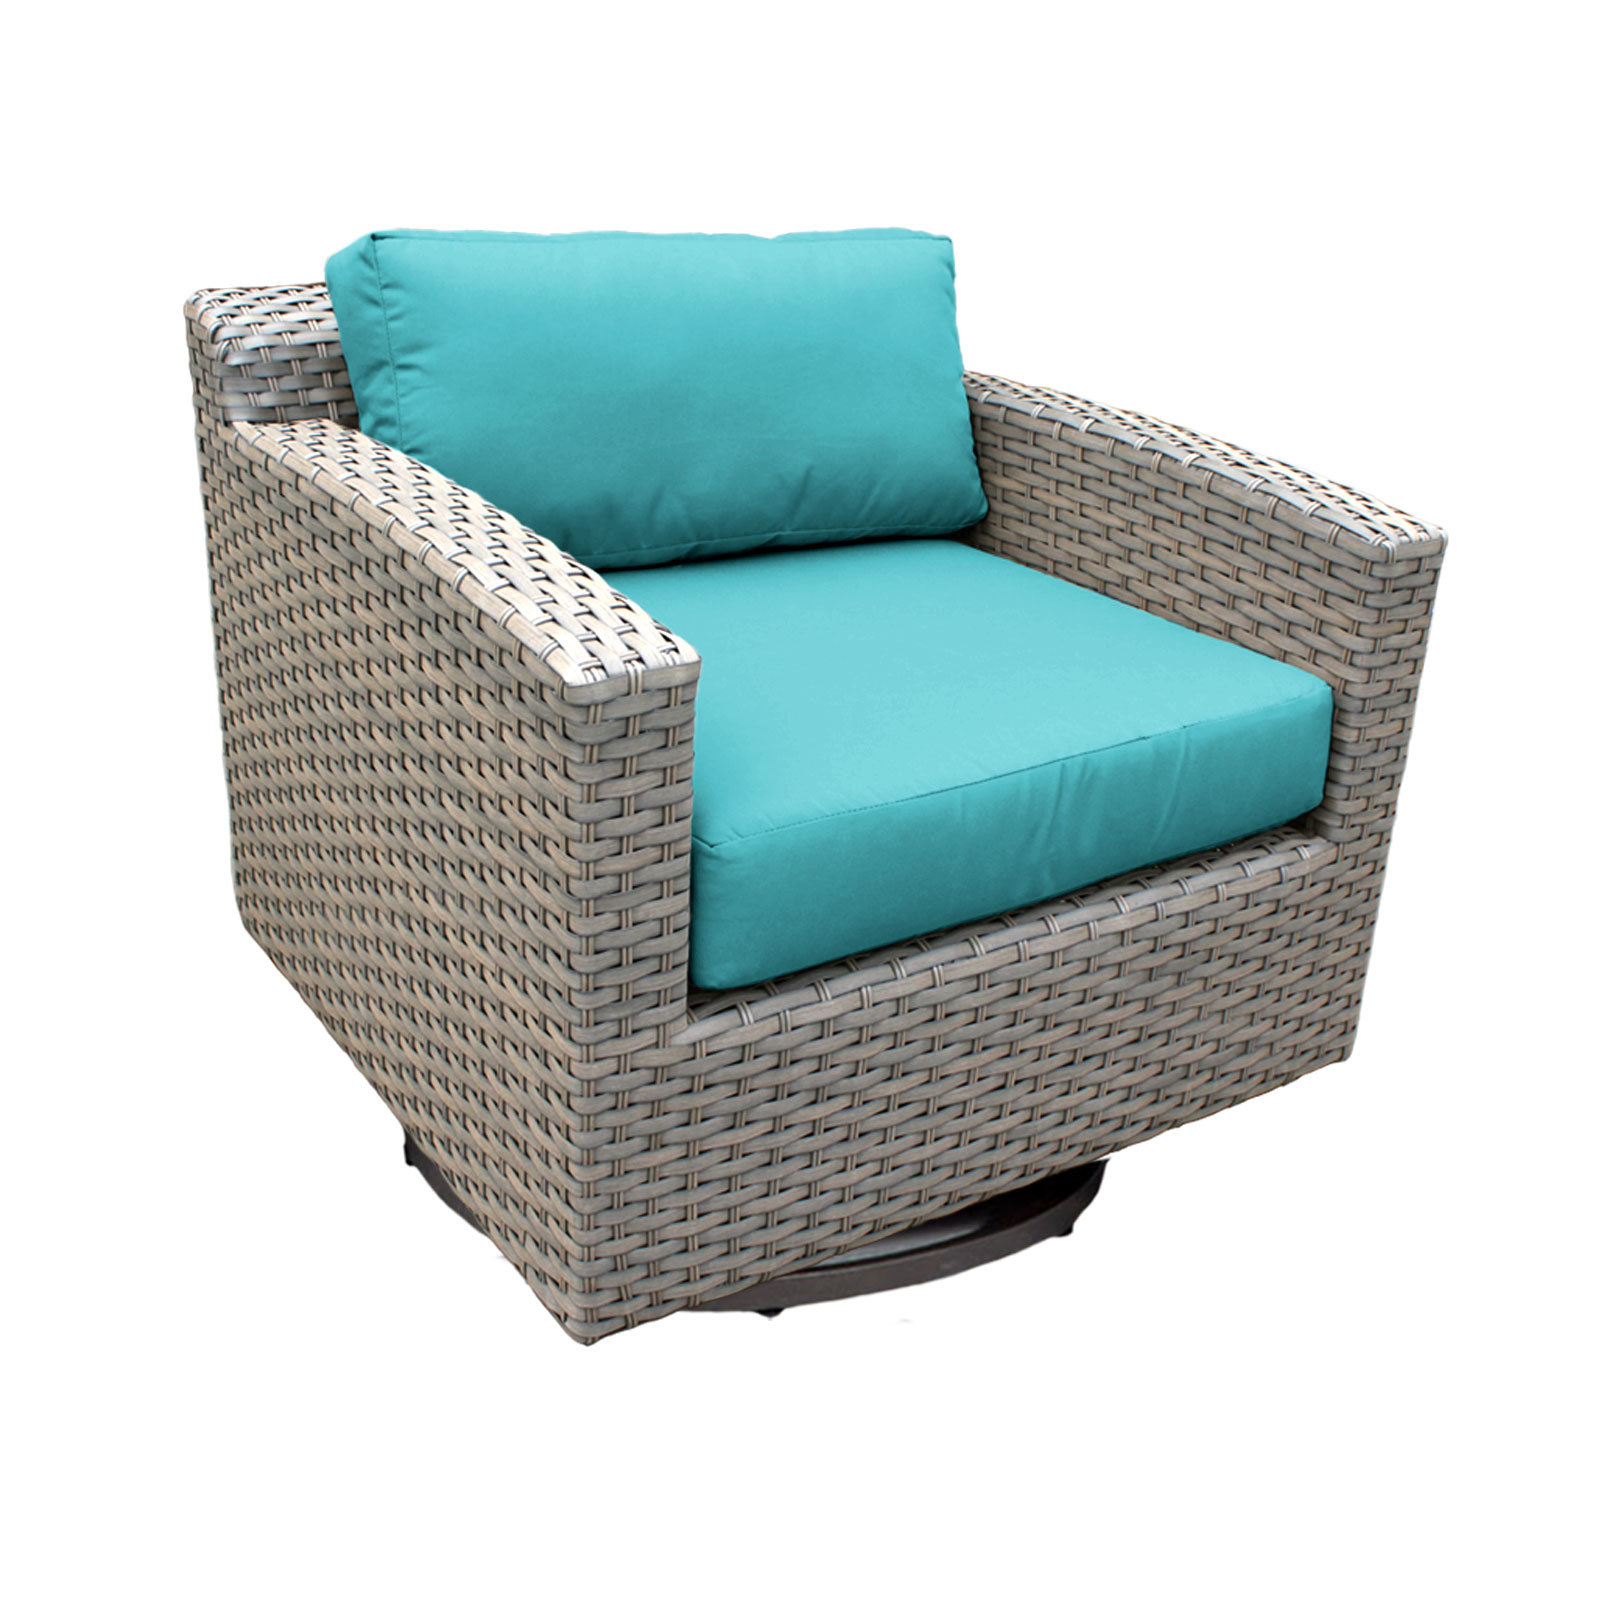 2020 Meeks Swivel Patio Chair With Cushions With Regard To Meeks Patio Sofas With Cushions (View 7 of 20)